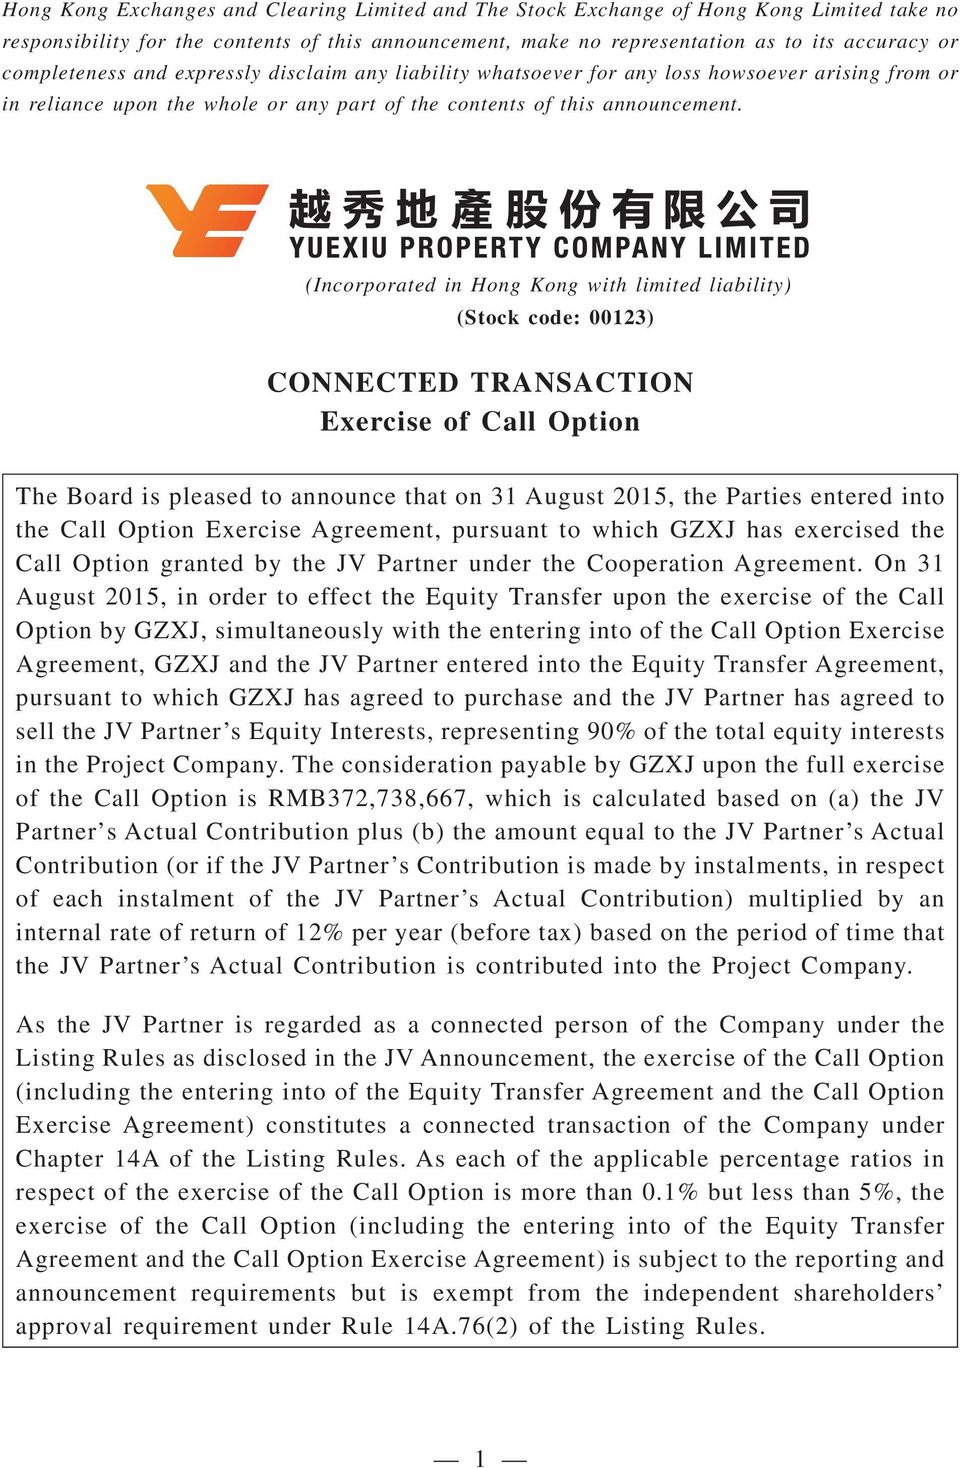 52 (Incorporated in Hong Kong with limited liability) (Stock code: 00123) CONNECTED TRANSACTION Exercise of Call Option The Board is pleased to announce that on 31 August 2015, the Parties entered